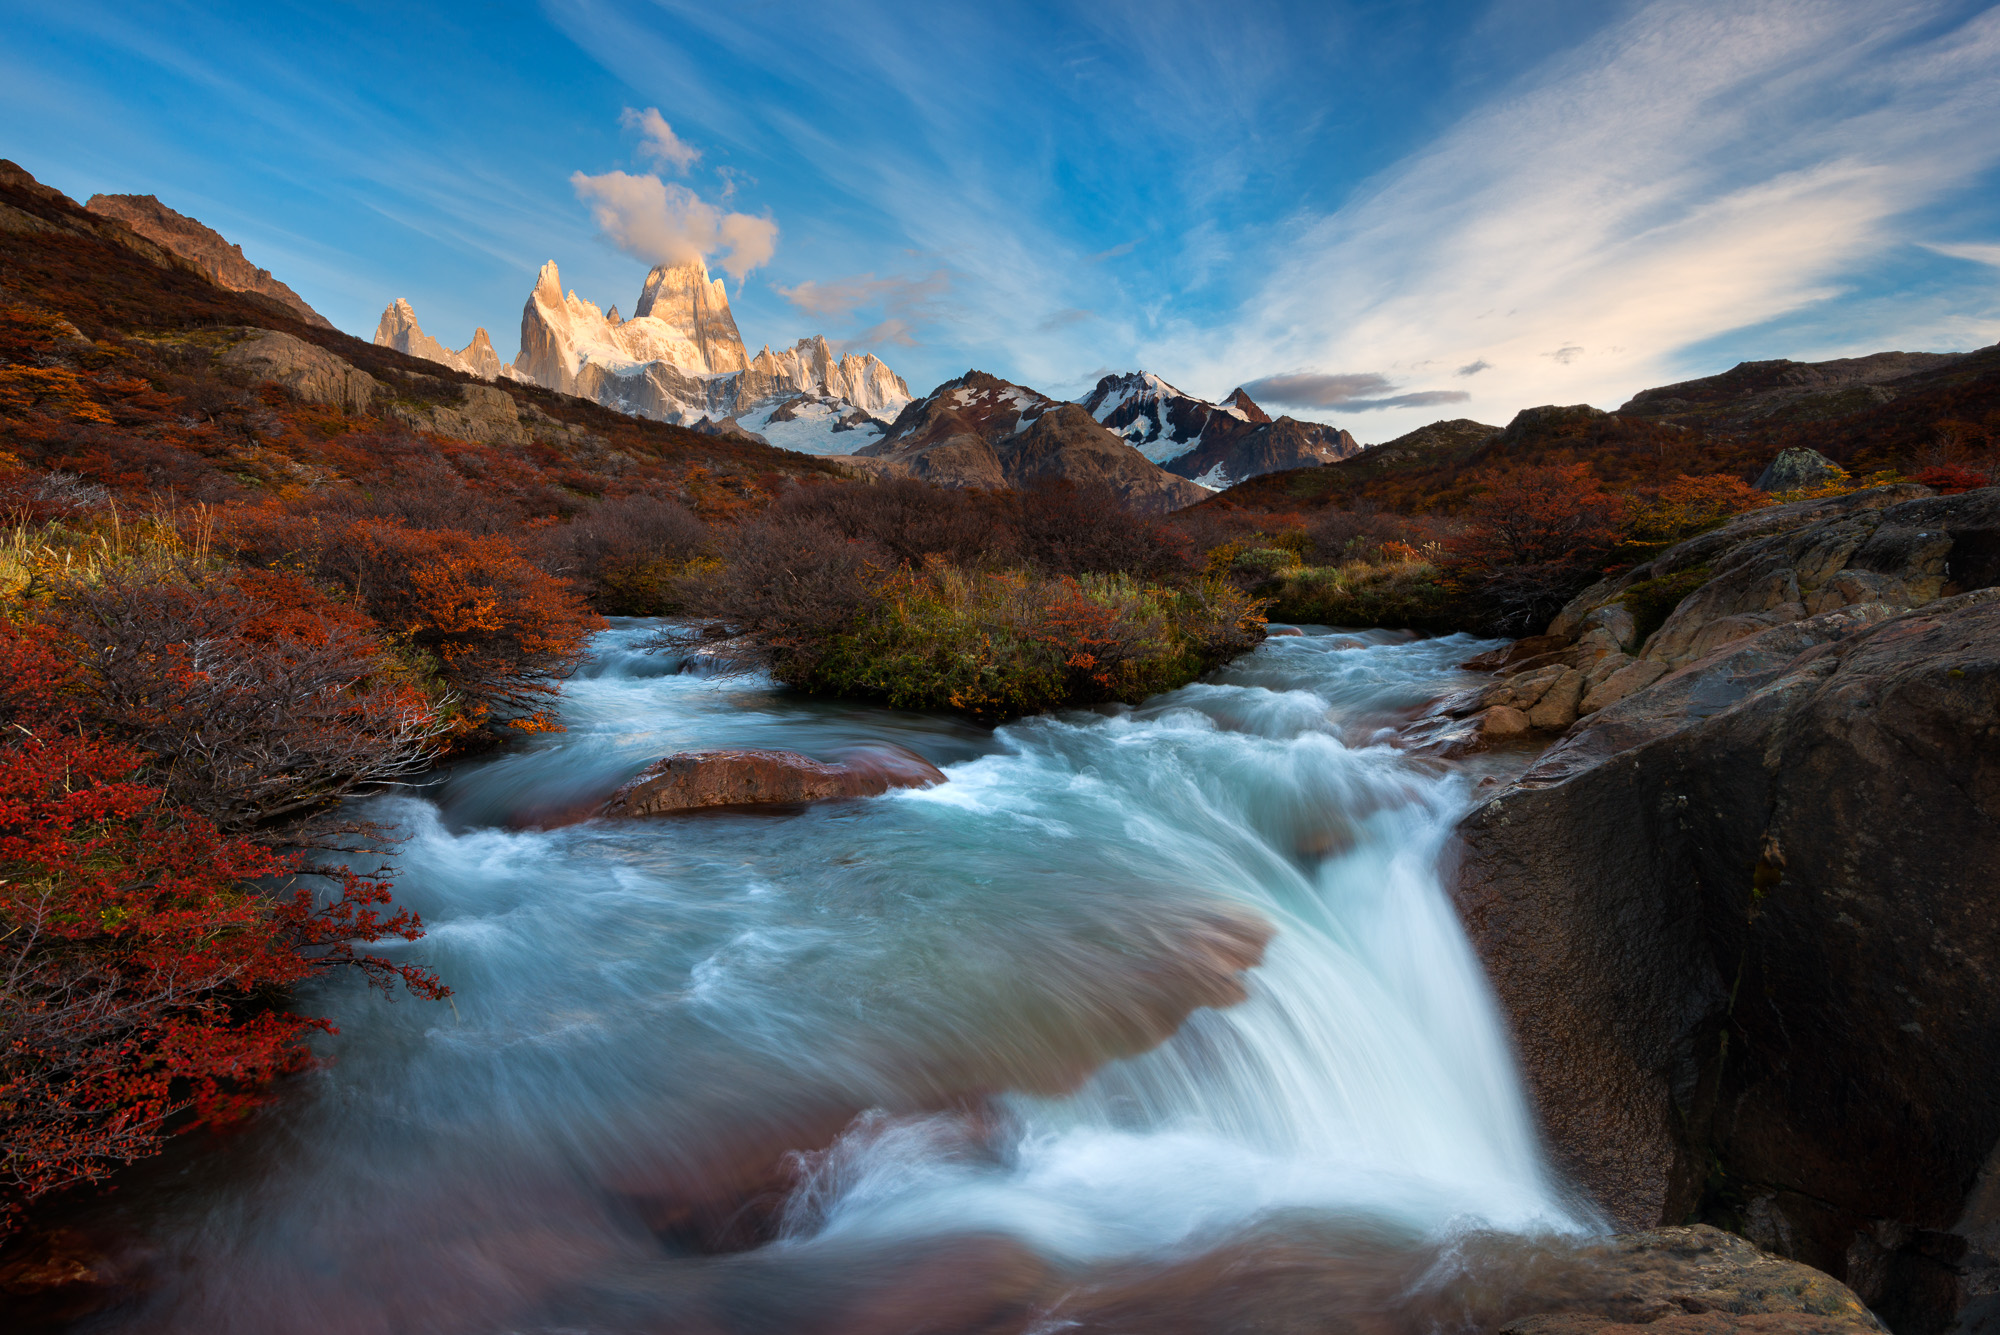 <strong>ICONIC IMAGES/CANON COLLECTIVE 2019 PHOTOGRAPHIC TOUR - PATAGONIA</strong>